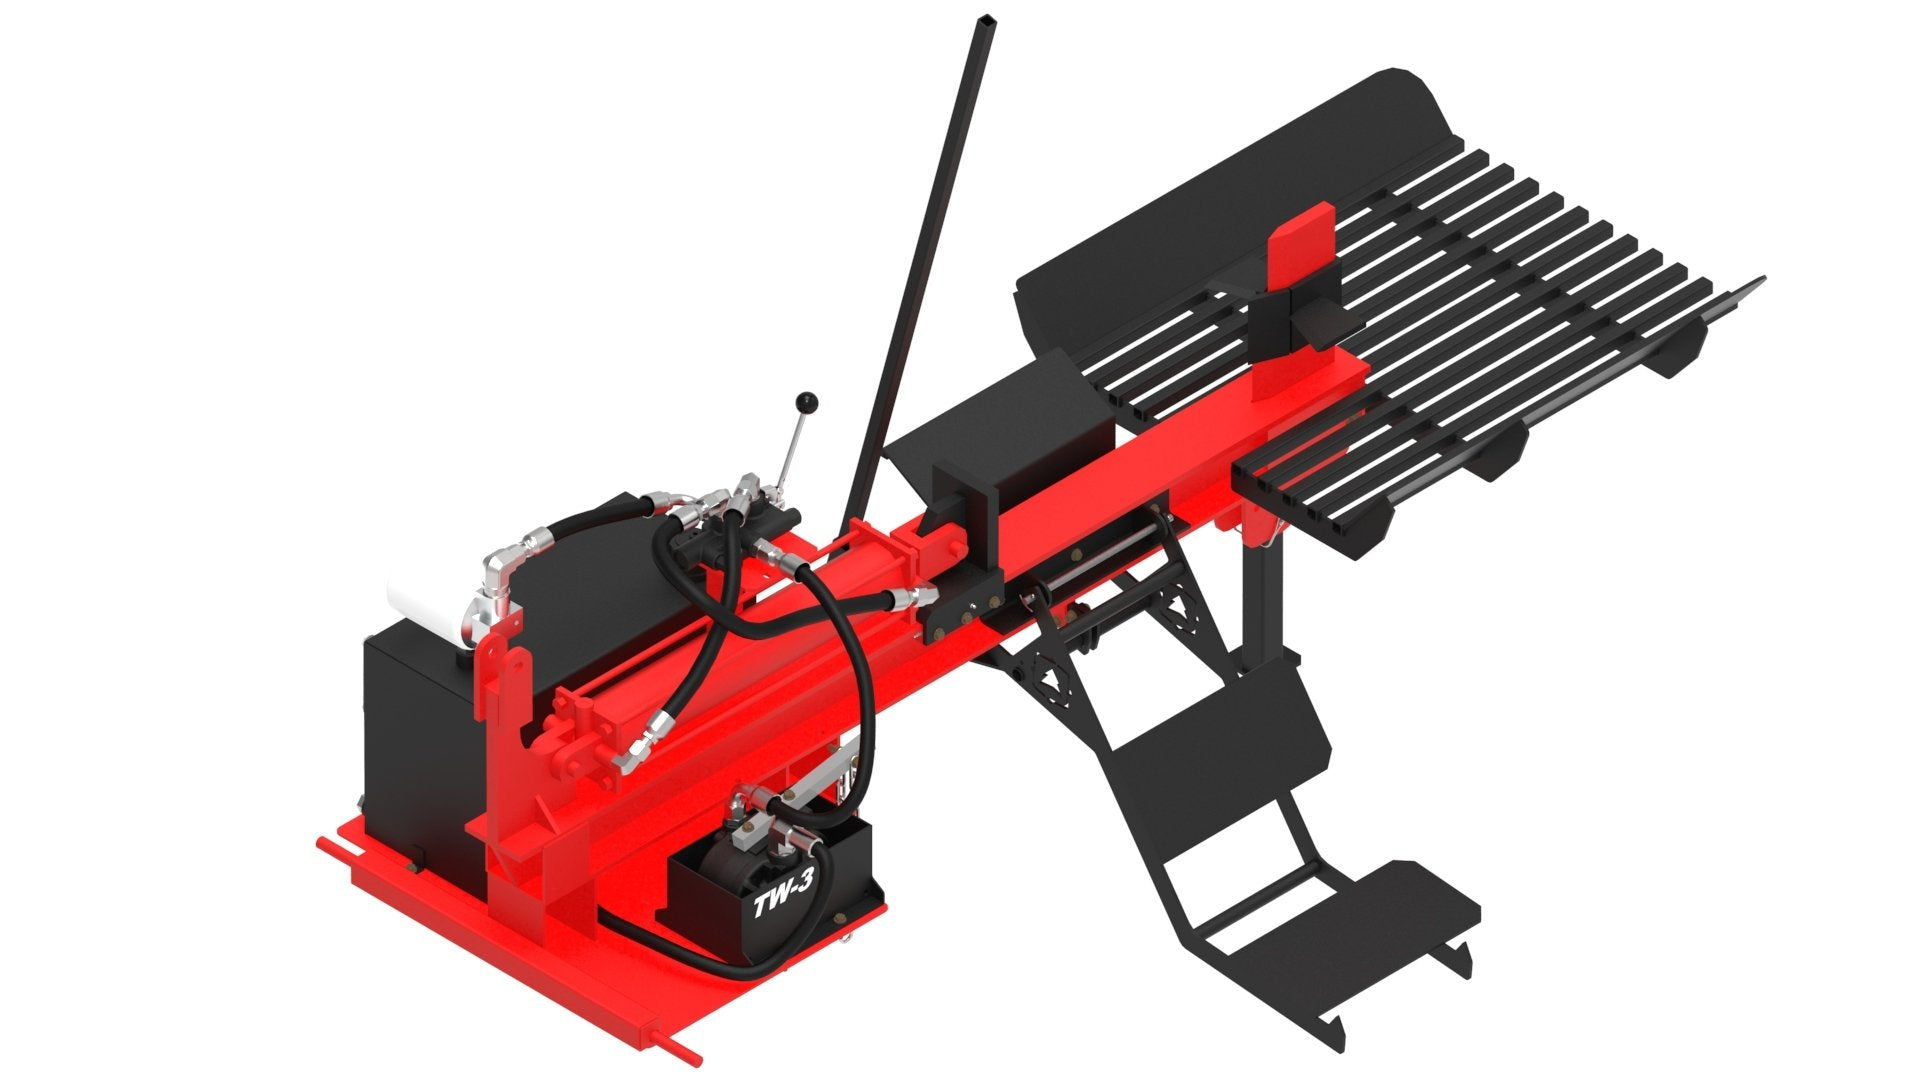 TW-3 4-Way Table Grate Log Lift